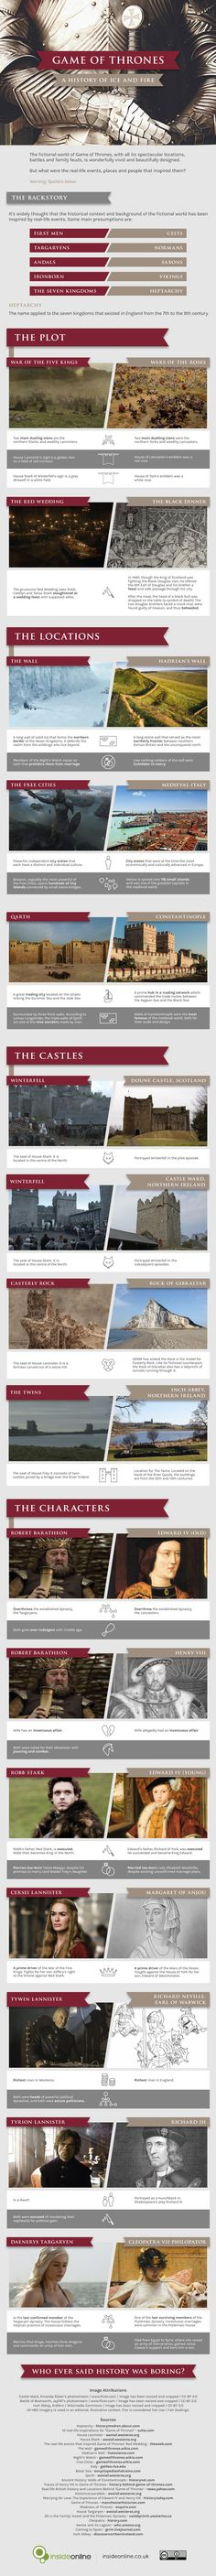 History of Game of Thrones Infographic http://geekxgirls.com/article.php?ID=5184